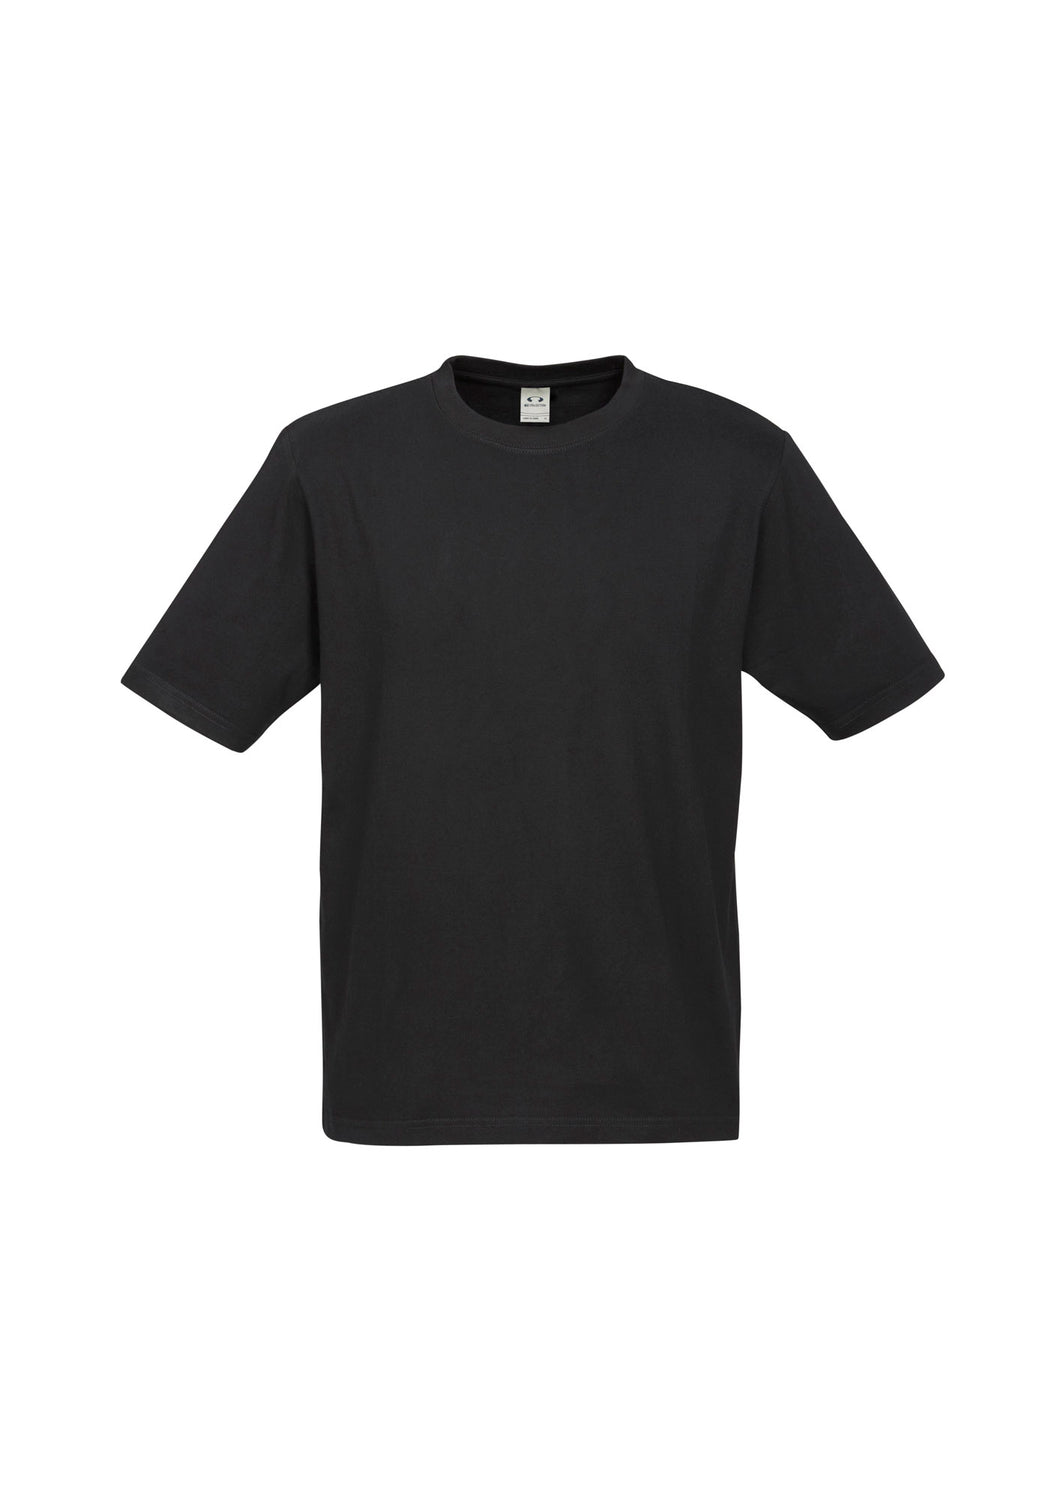 Ambience Mens Tee - Solomon Brothers Apparel